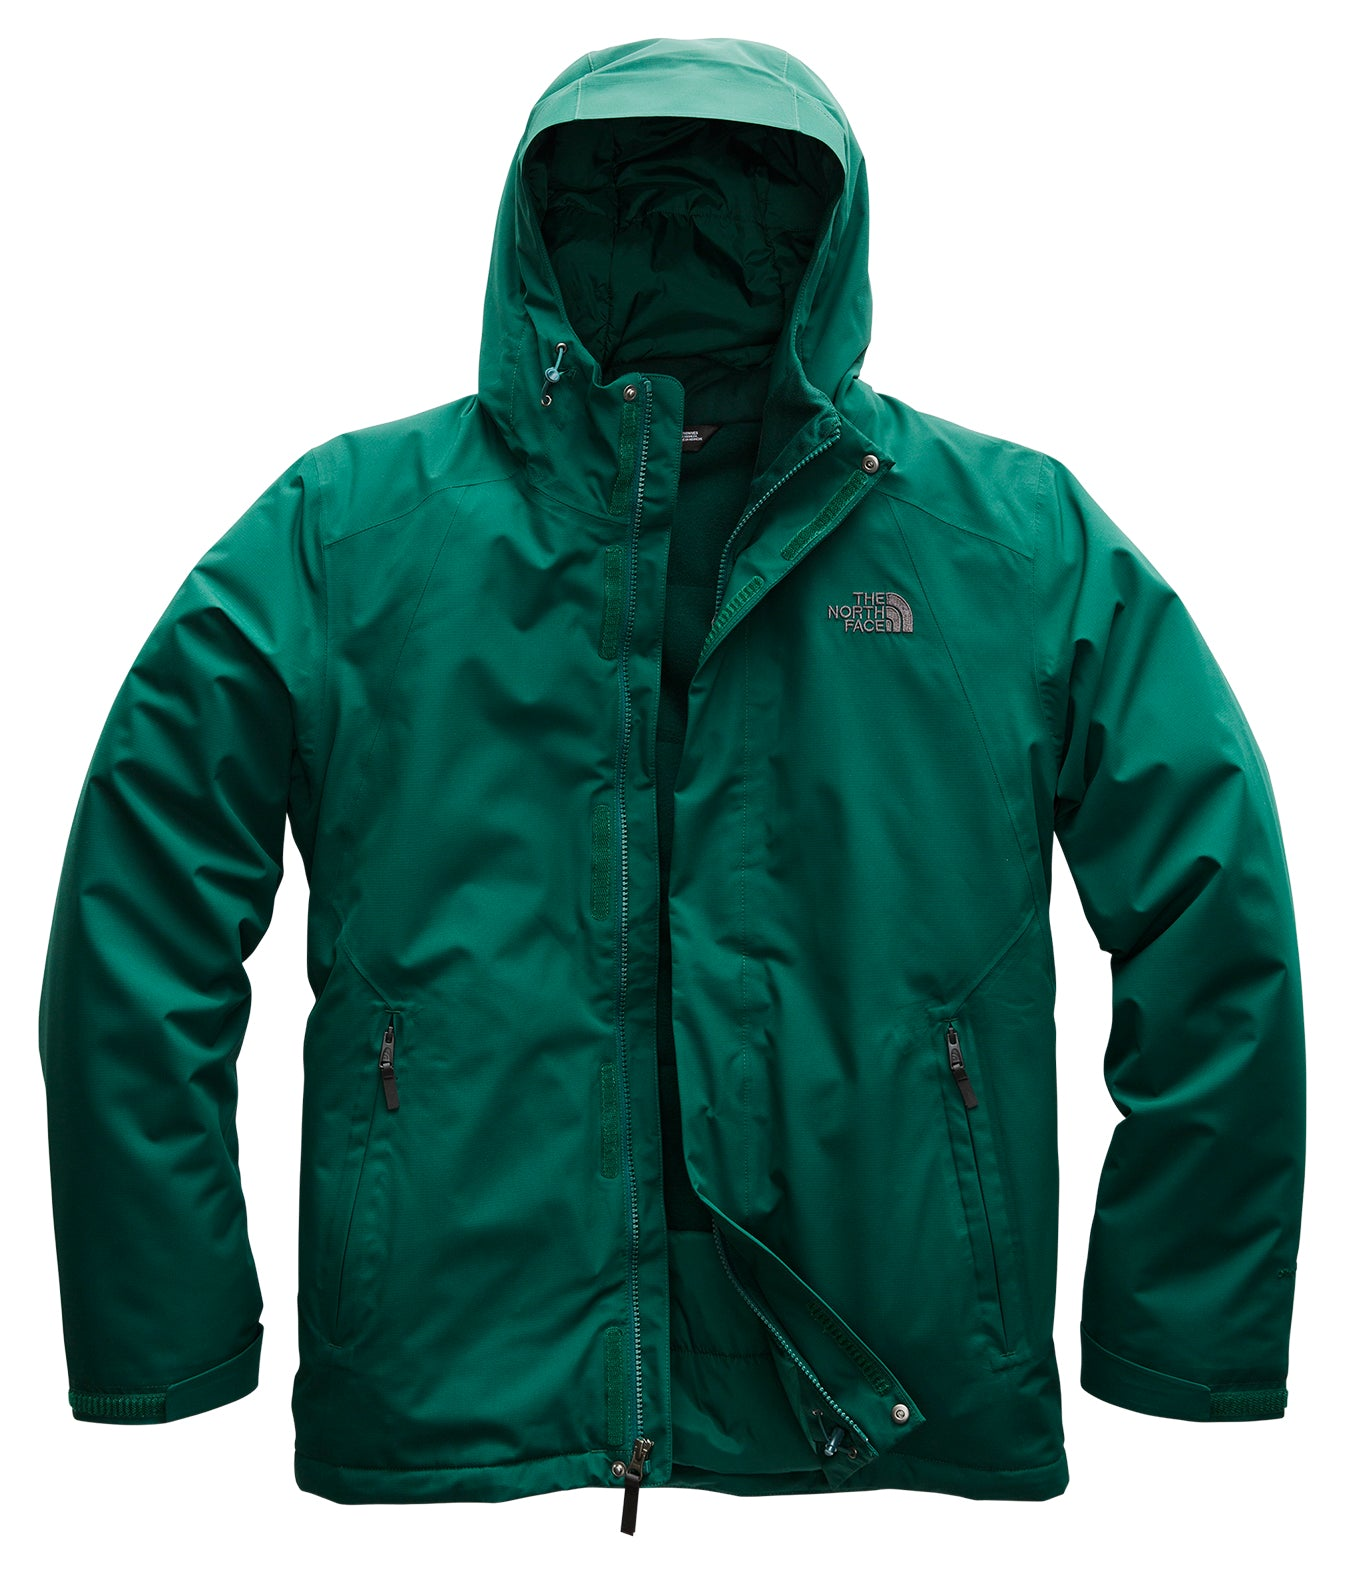 6cc8ec34d The North Face Inlux Insulated Jacket - Men's